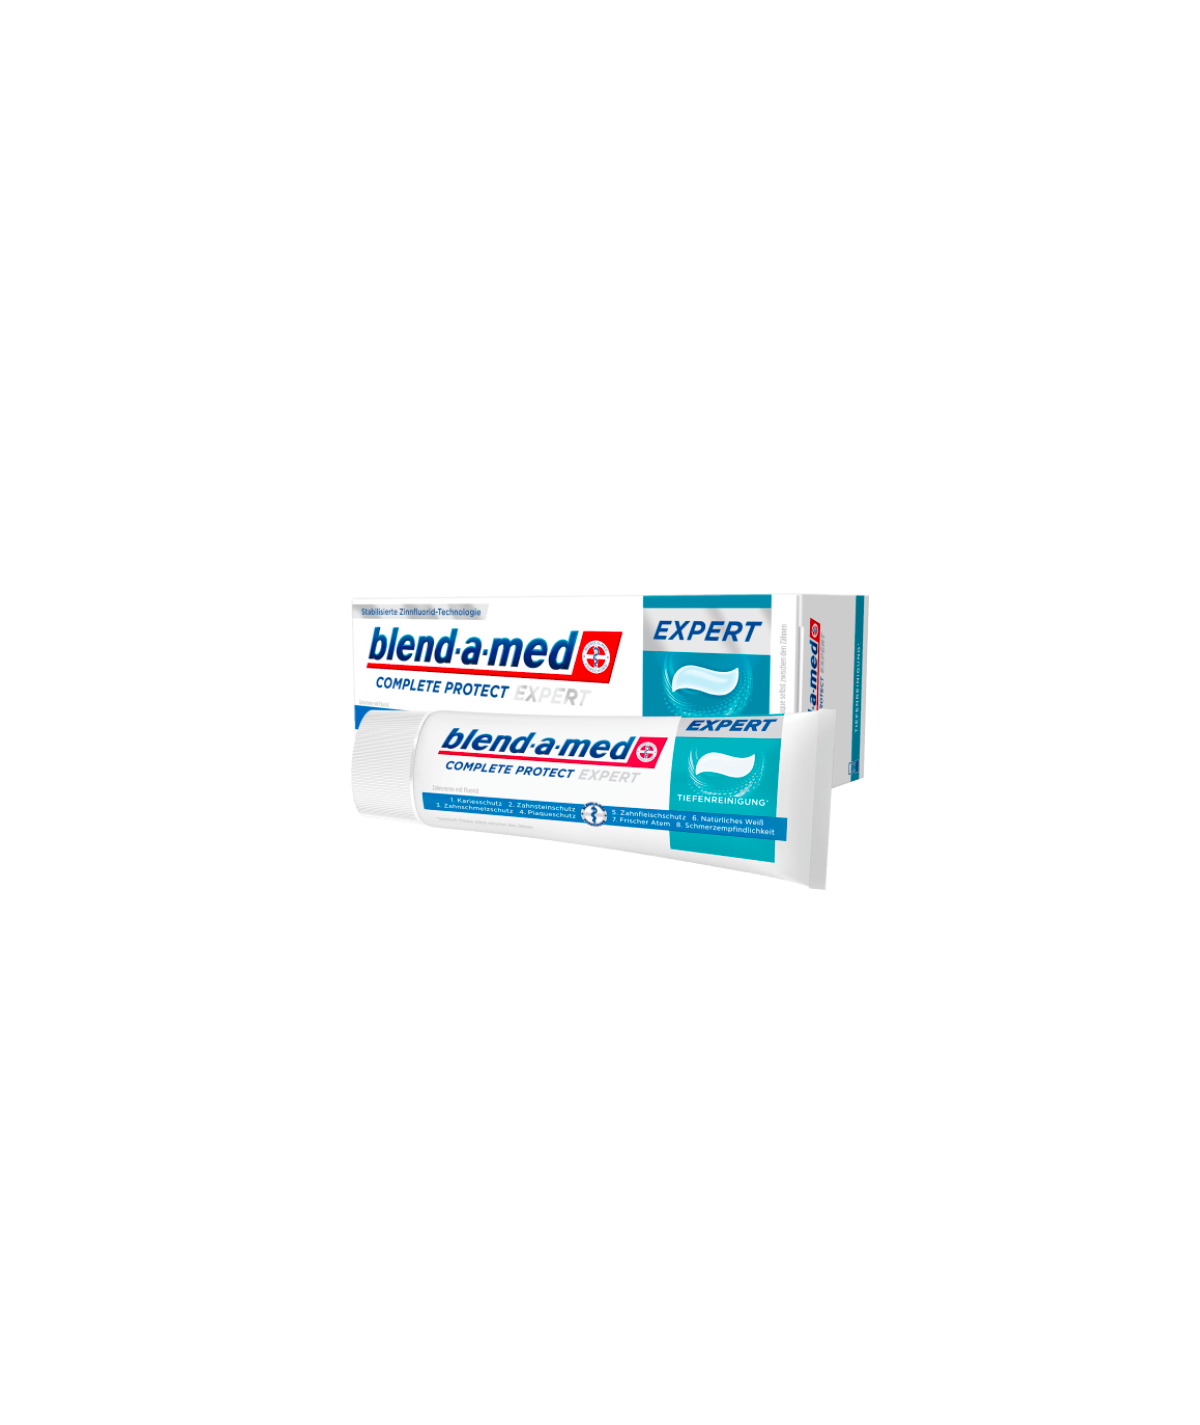 Dentifrice Complete Protect Expert, 75 ml